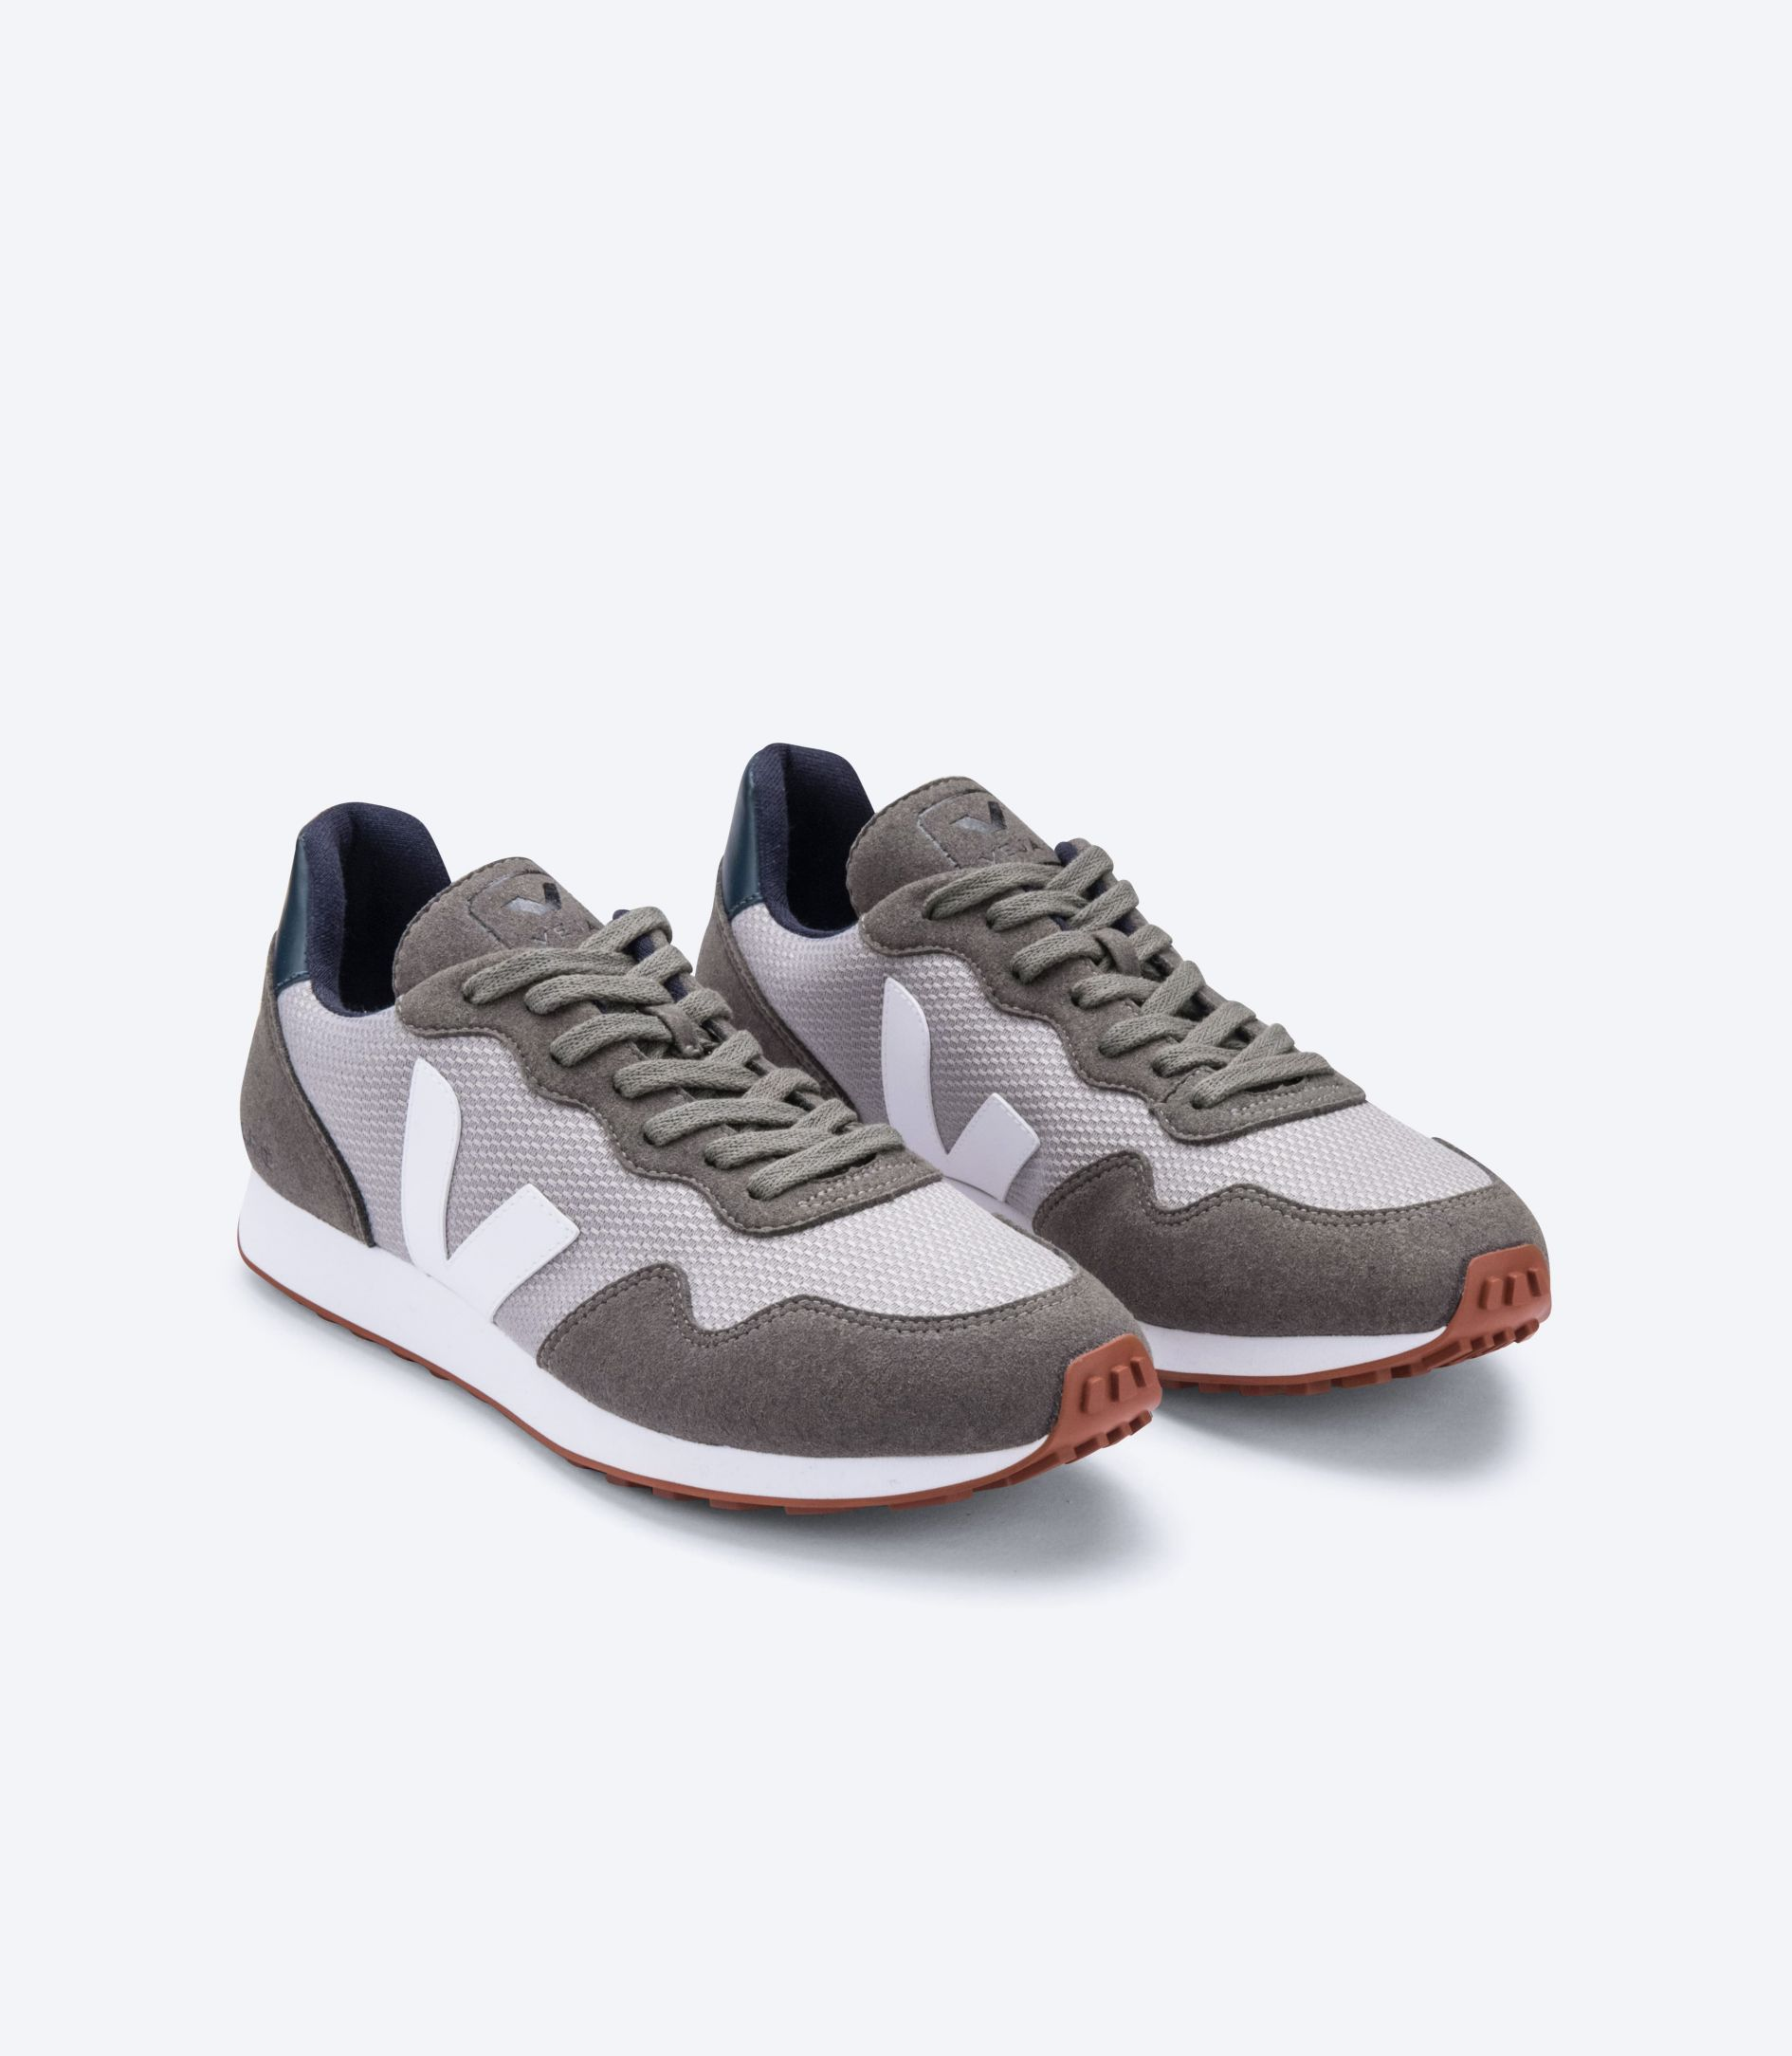 RR012357 2 What are the best vegan sneakers?